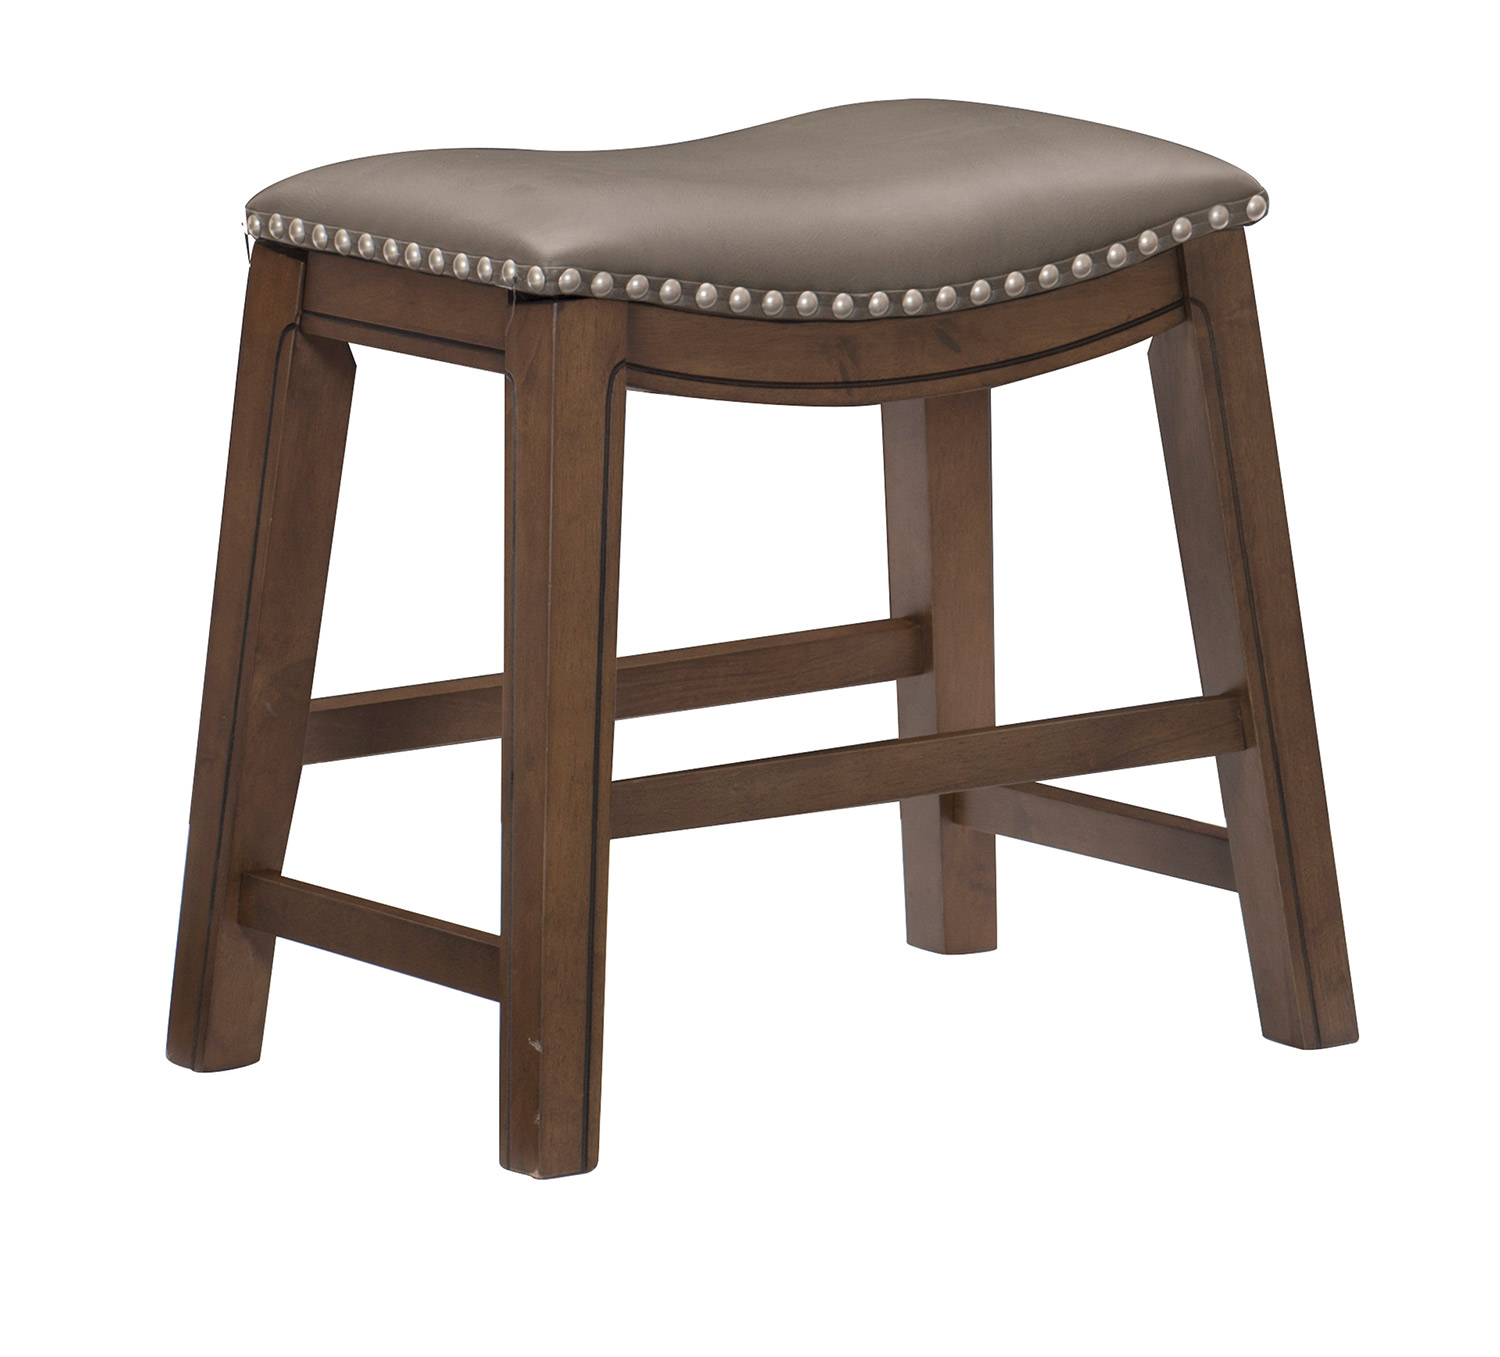 Homelegance 18 SH Stool - Gray